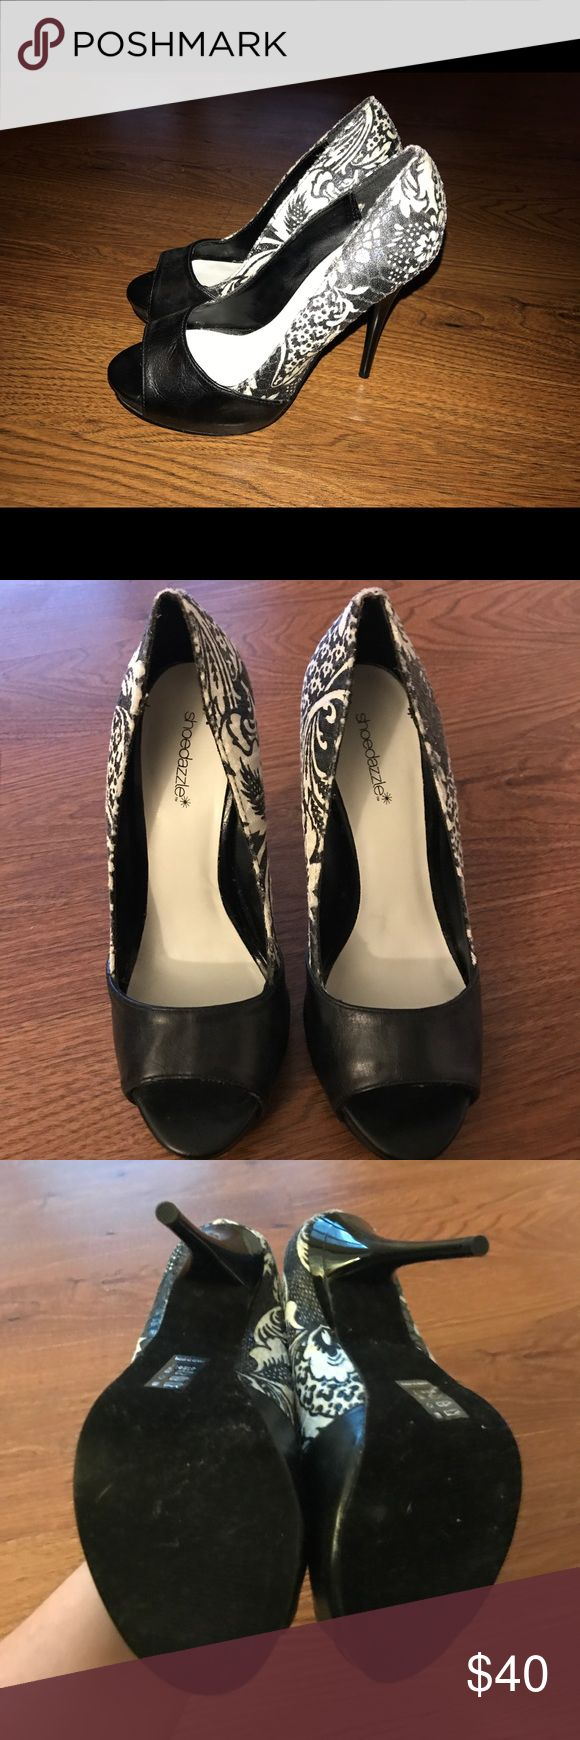 Black and white open toe pumps Black and white paisley open toe pumps. Never been worn. Size 7 ***price negotiable*** Shoe Dazzle Shoes Heels